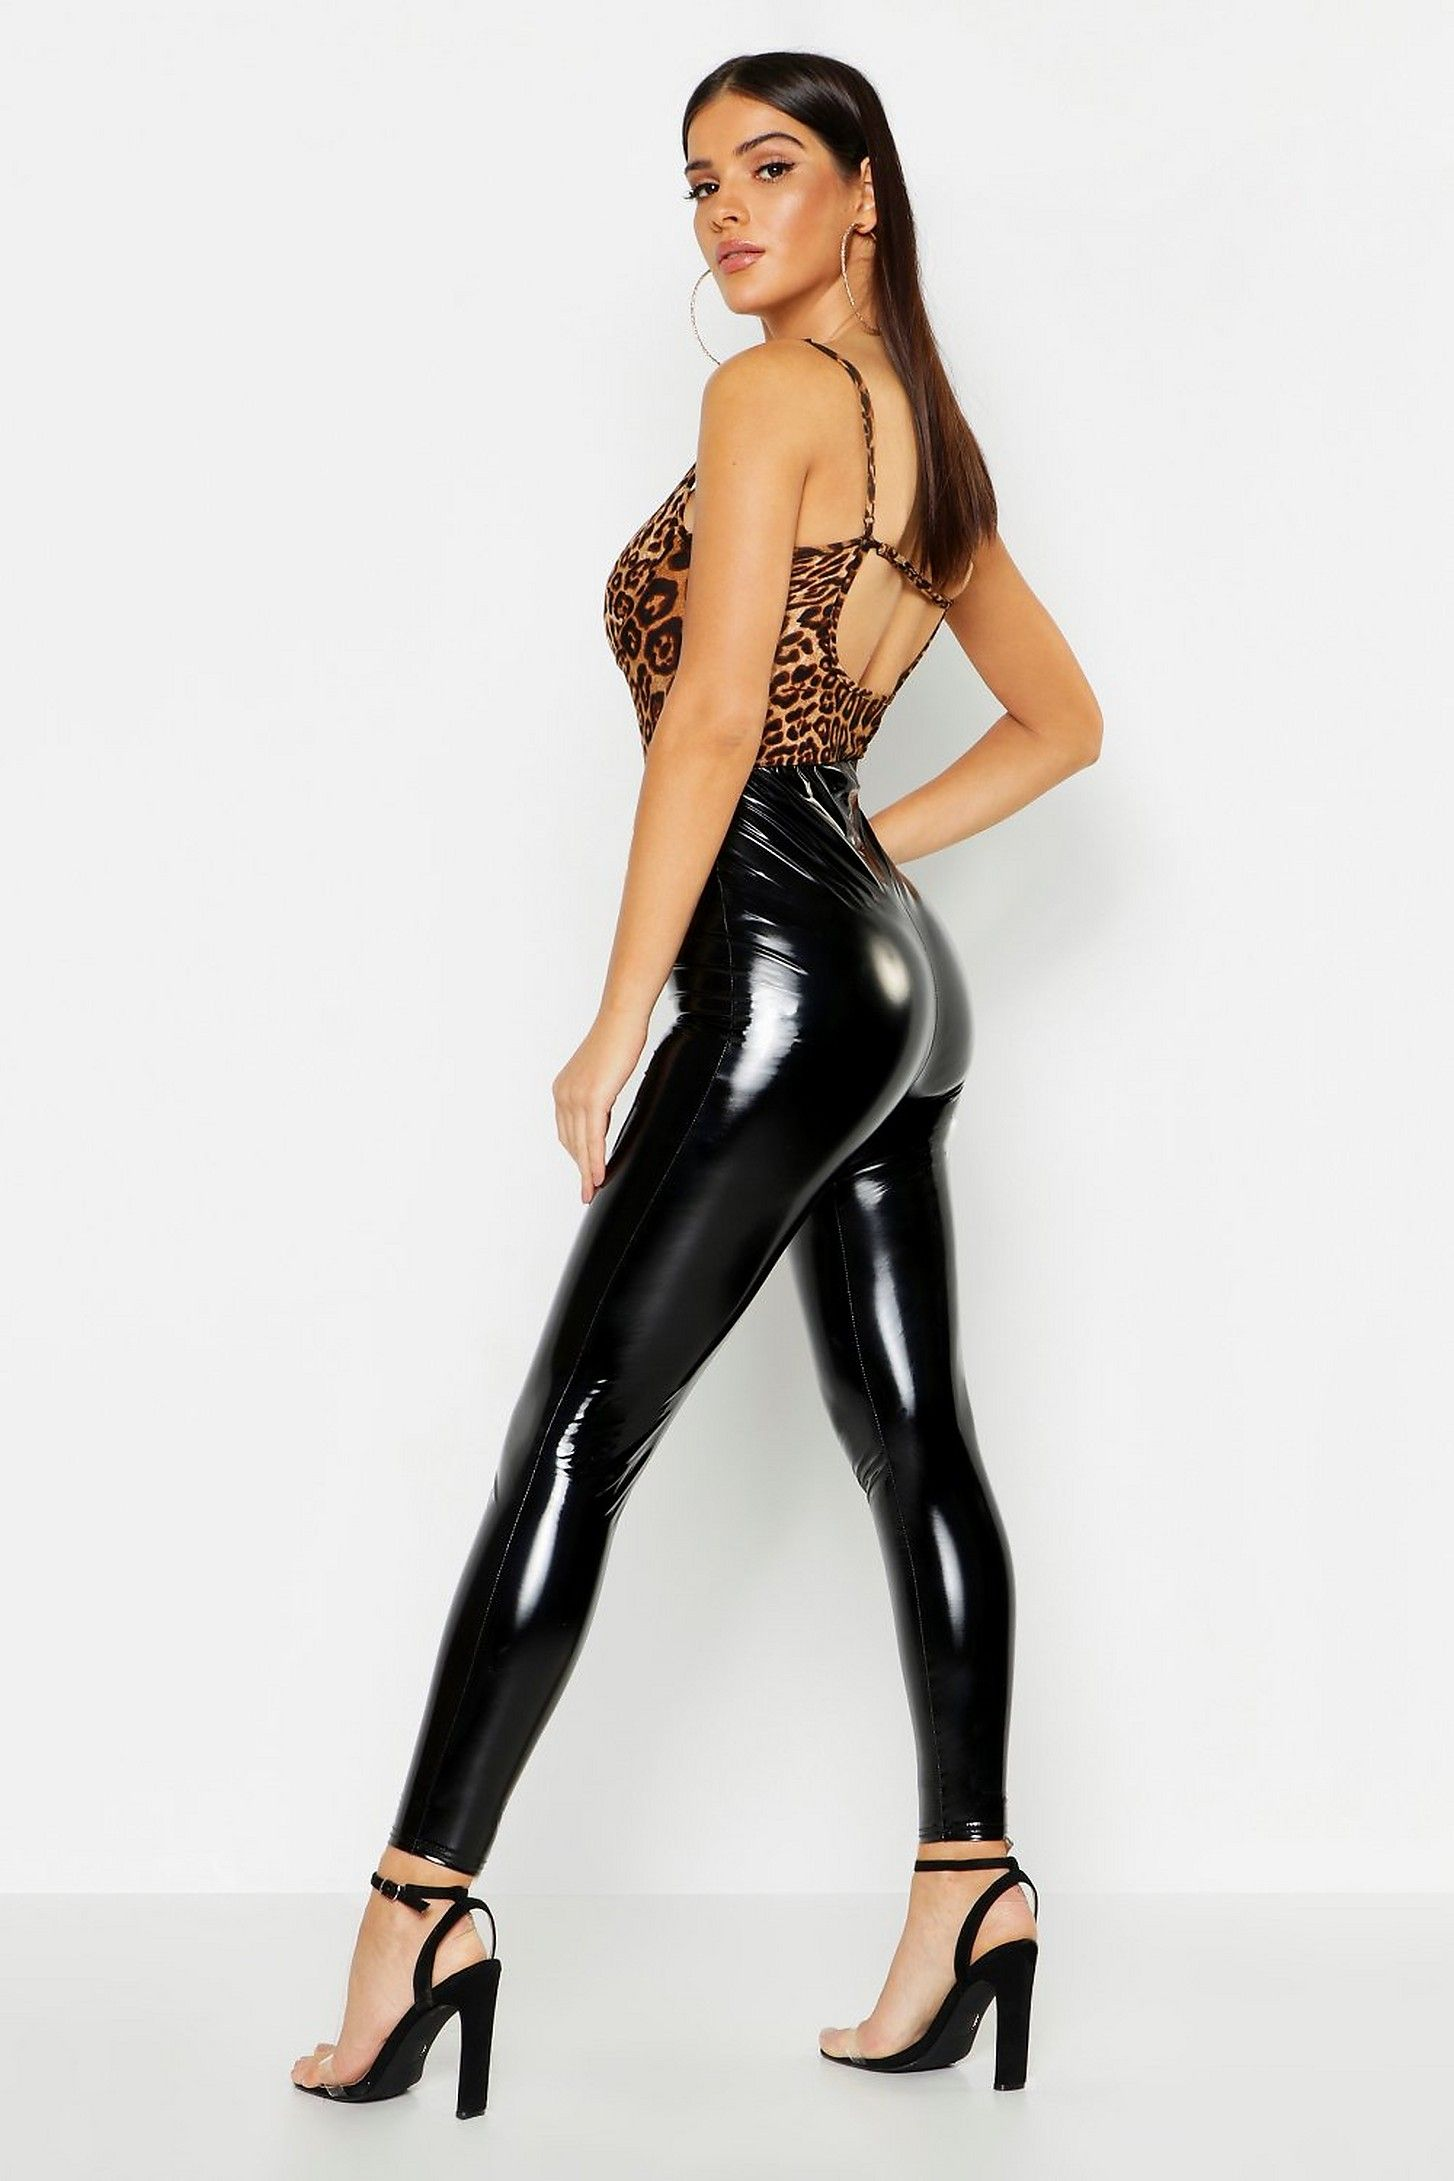 ca049a51f1c0 High Waist Vinyl Leggings Vinyl Leggings, Boohoo, Leather Pants, Outfits,  Fashion,